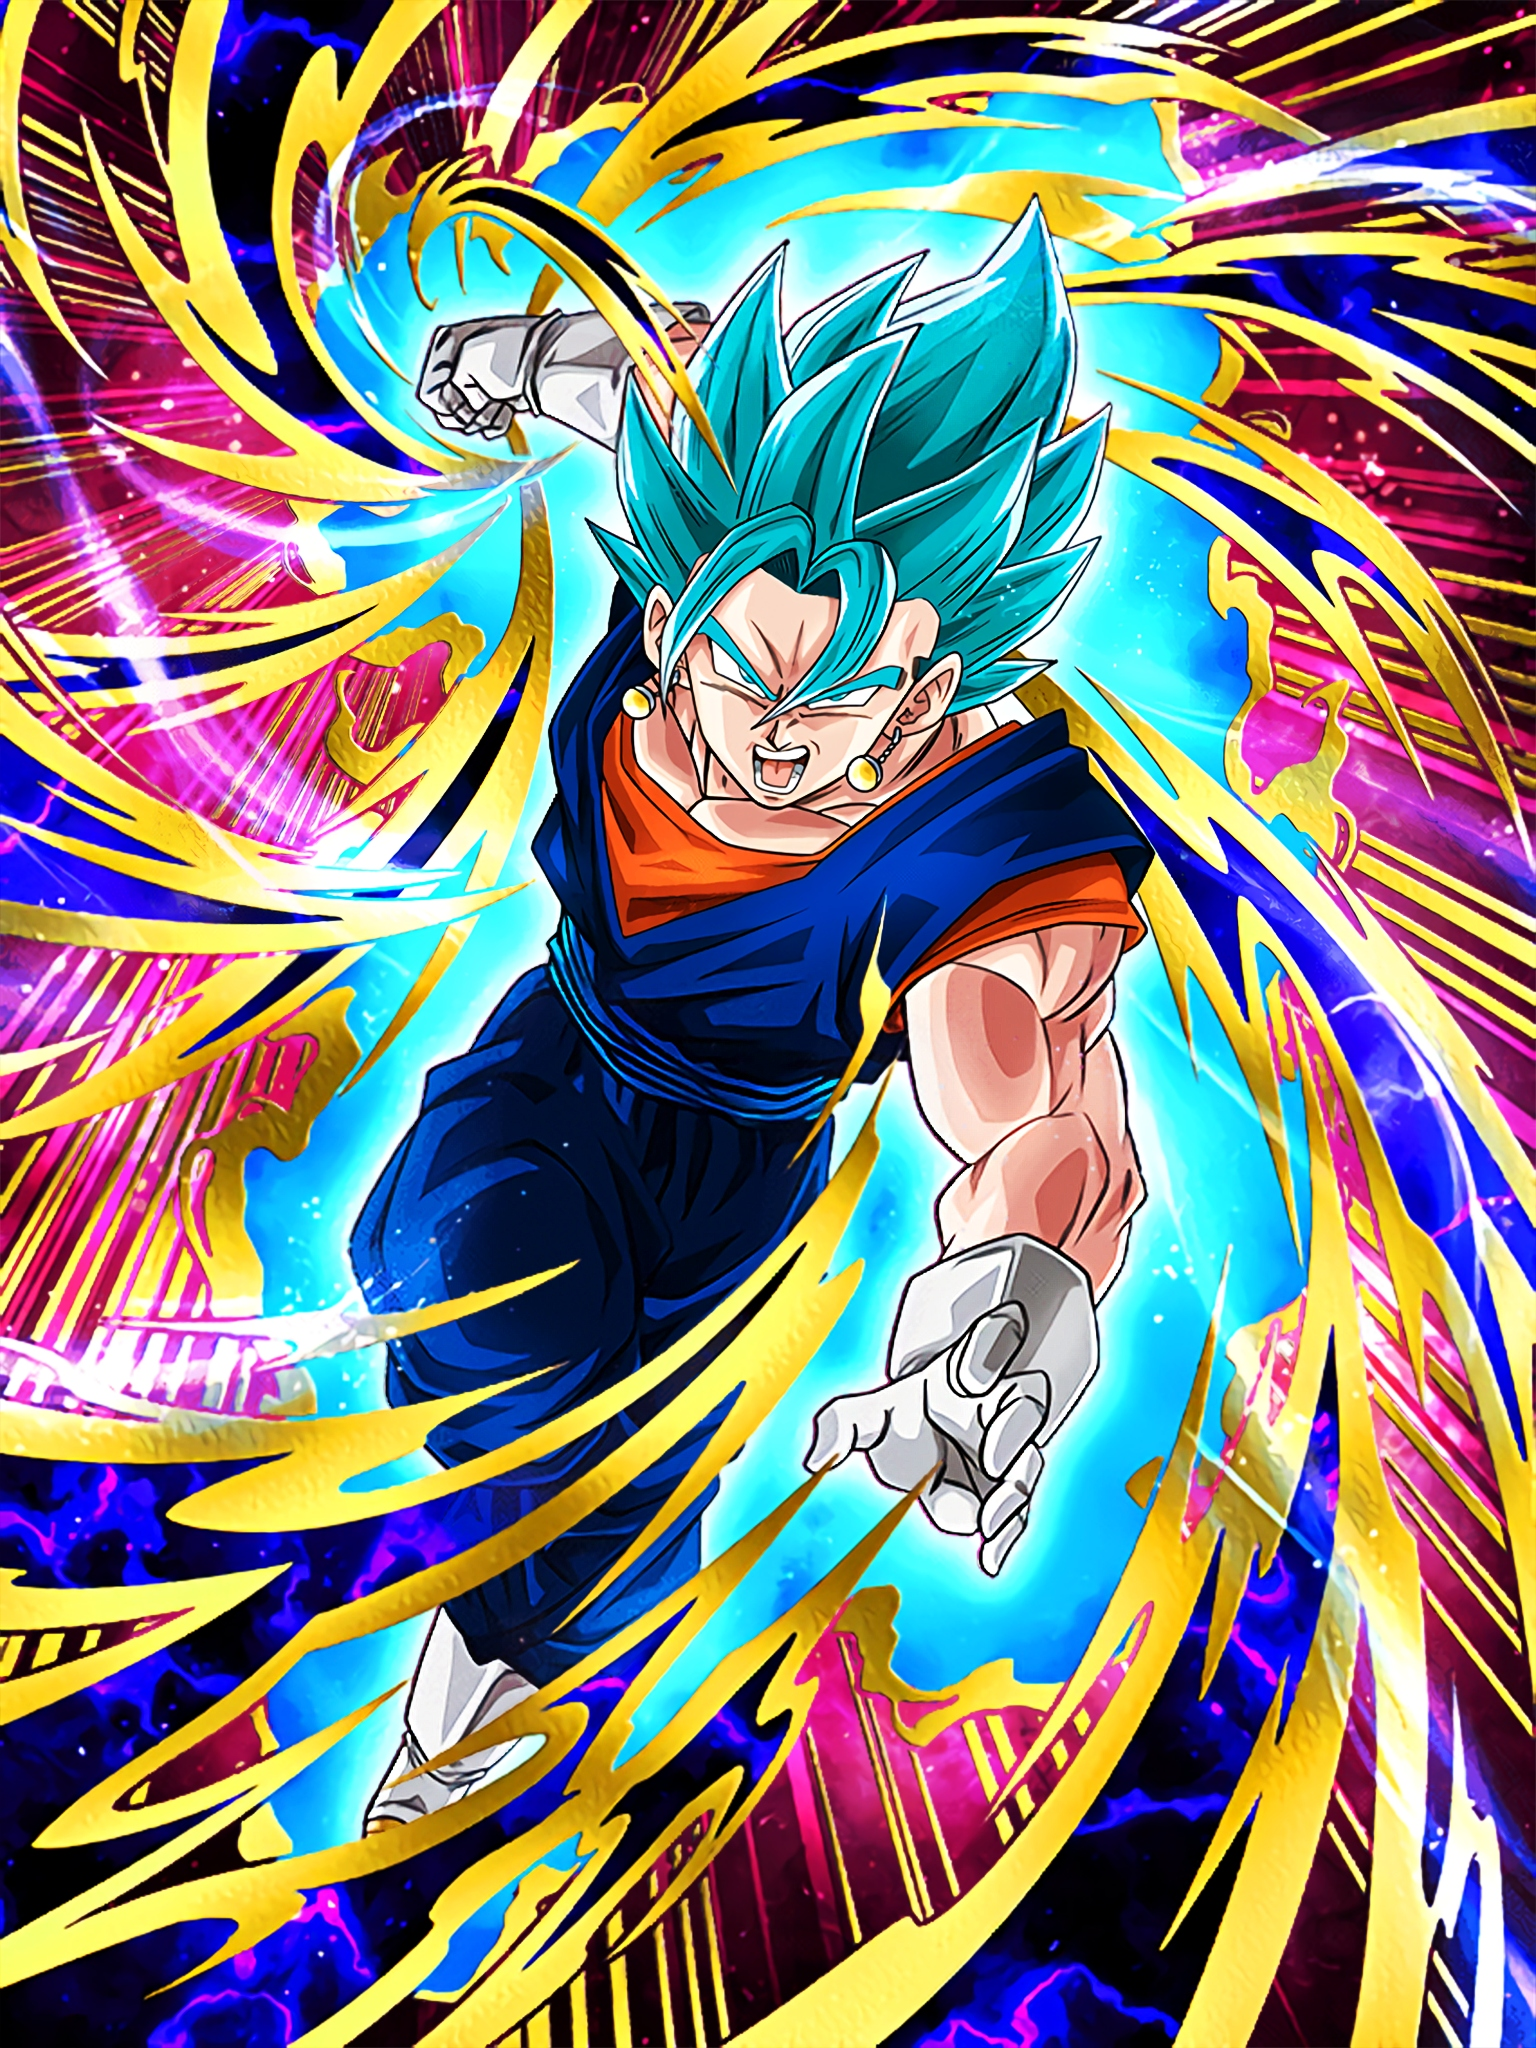 Azure Omnipotence Super Saiyan God SS Vegito Art (Dragon Ball Z Dokkan Battle).jpg